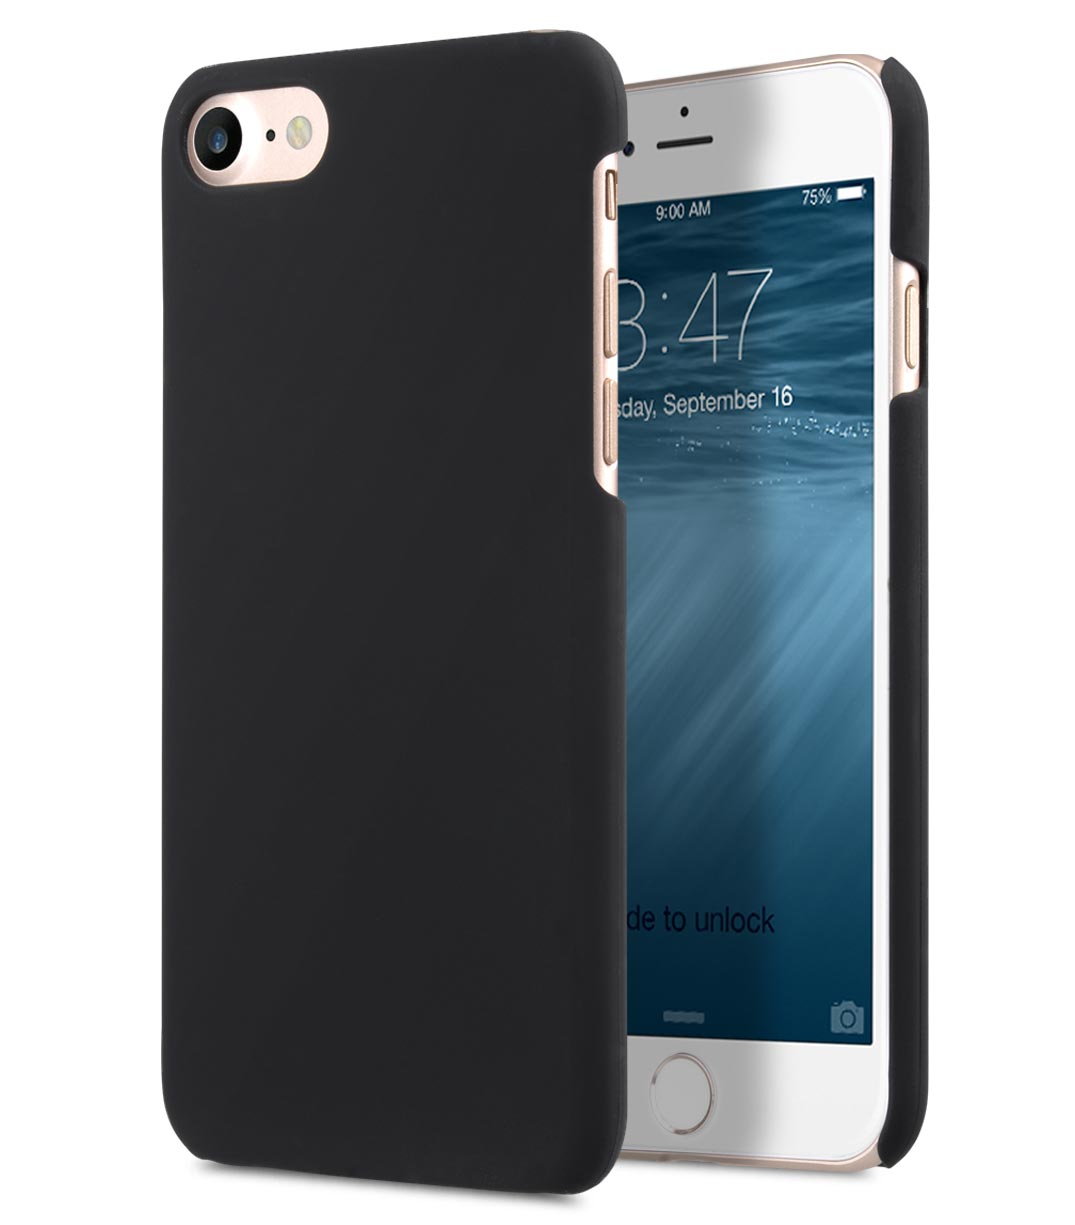 Image Result For Iphone Without Screen Protector